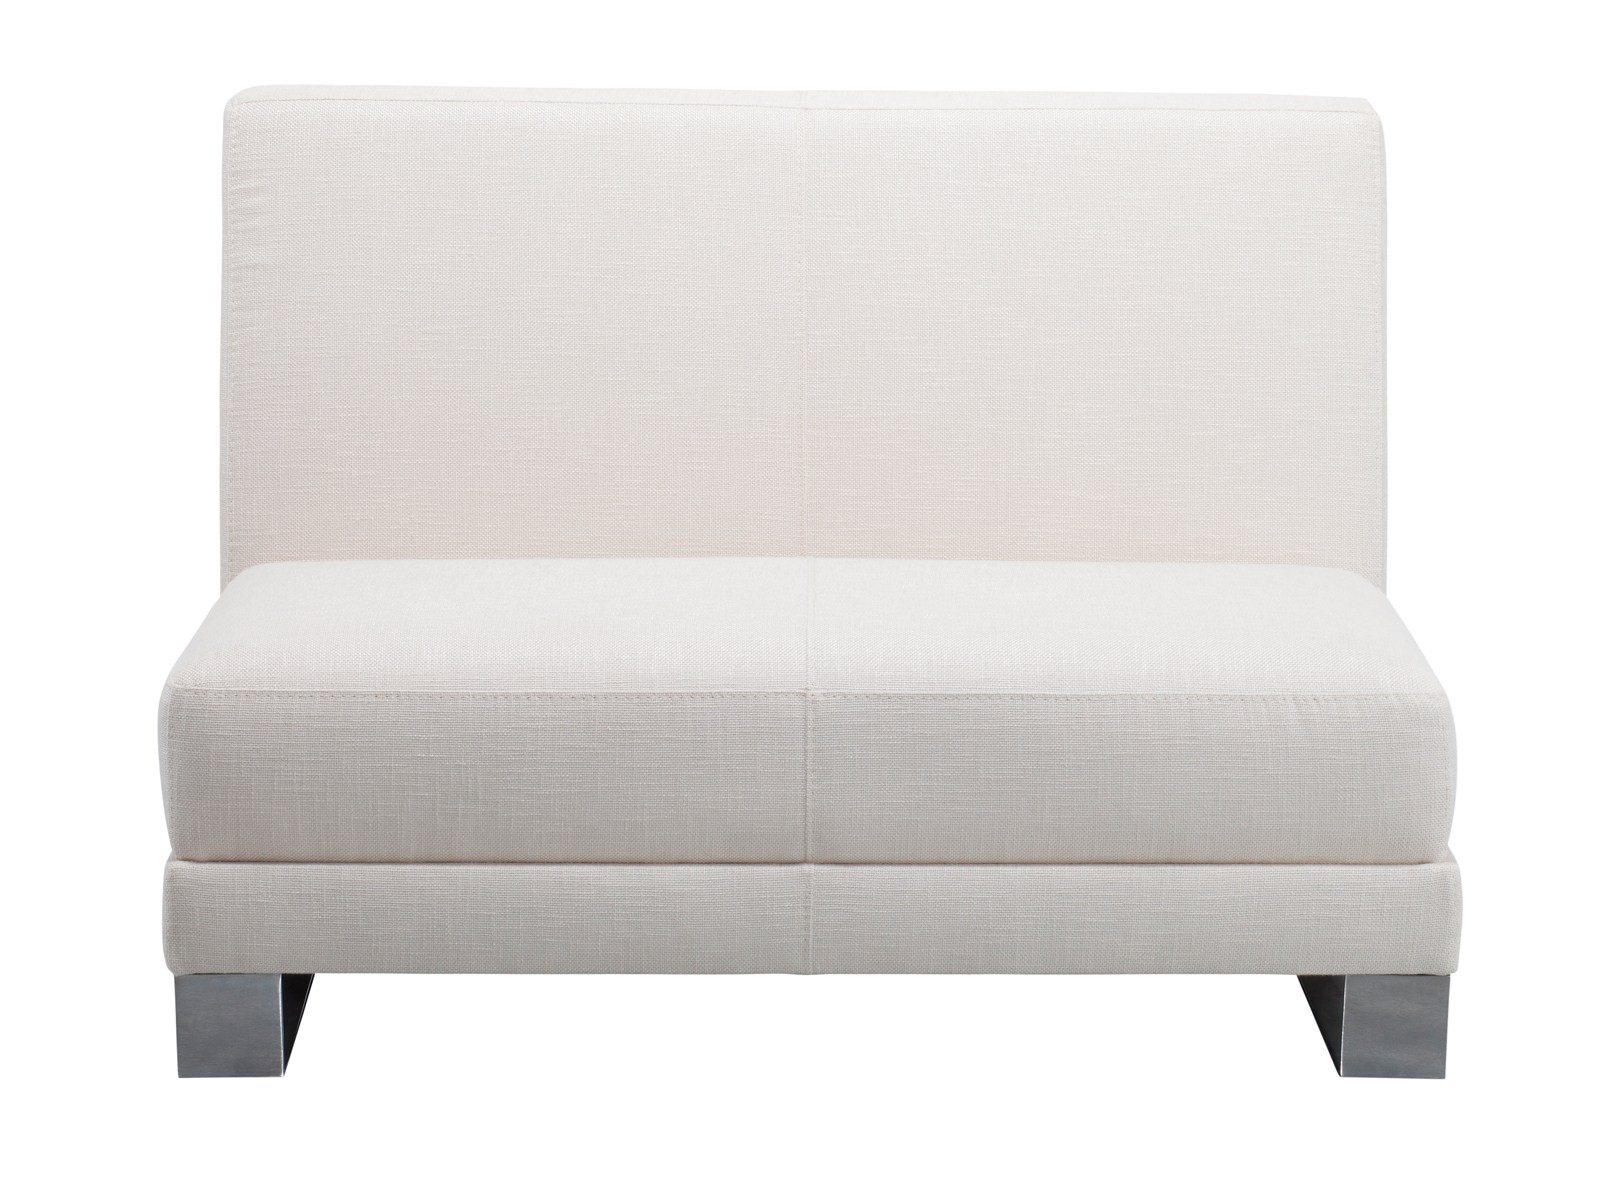 Small Fabric Sofas : furniture sofas and armchairs small sofas